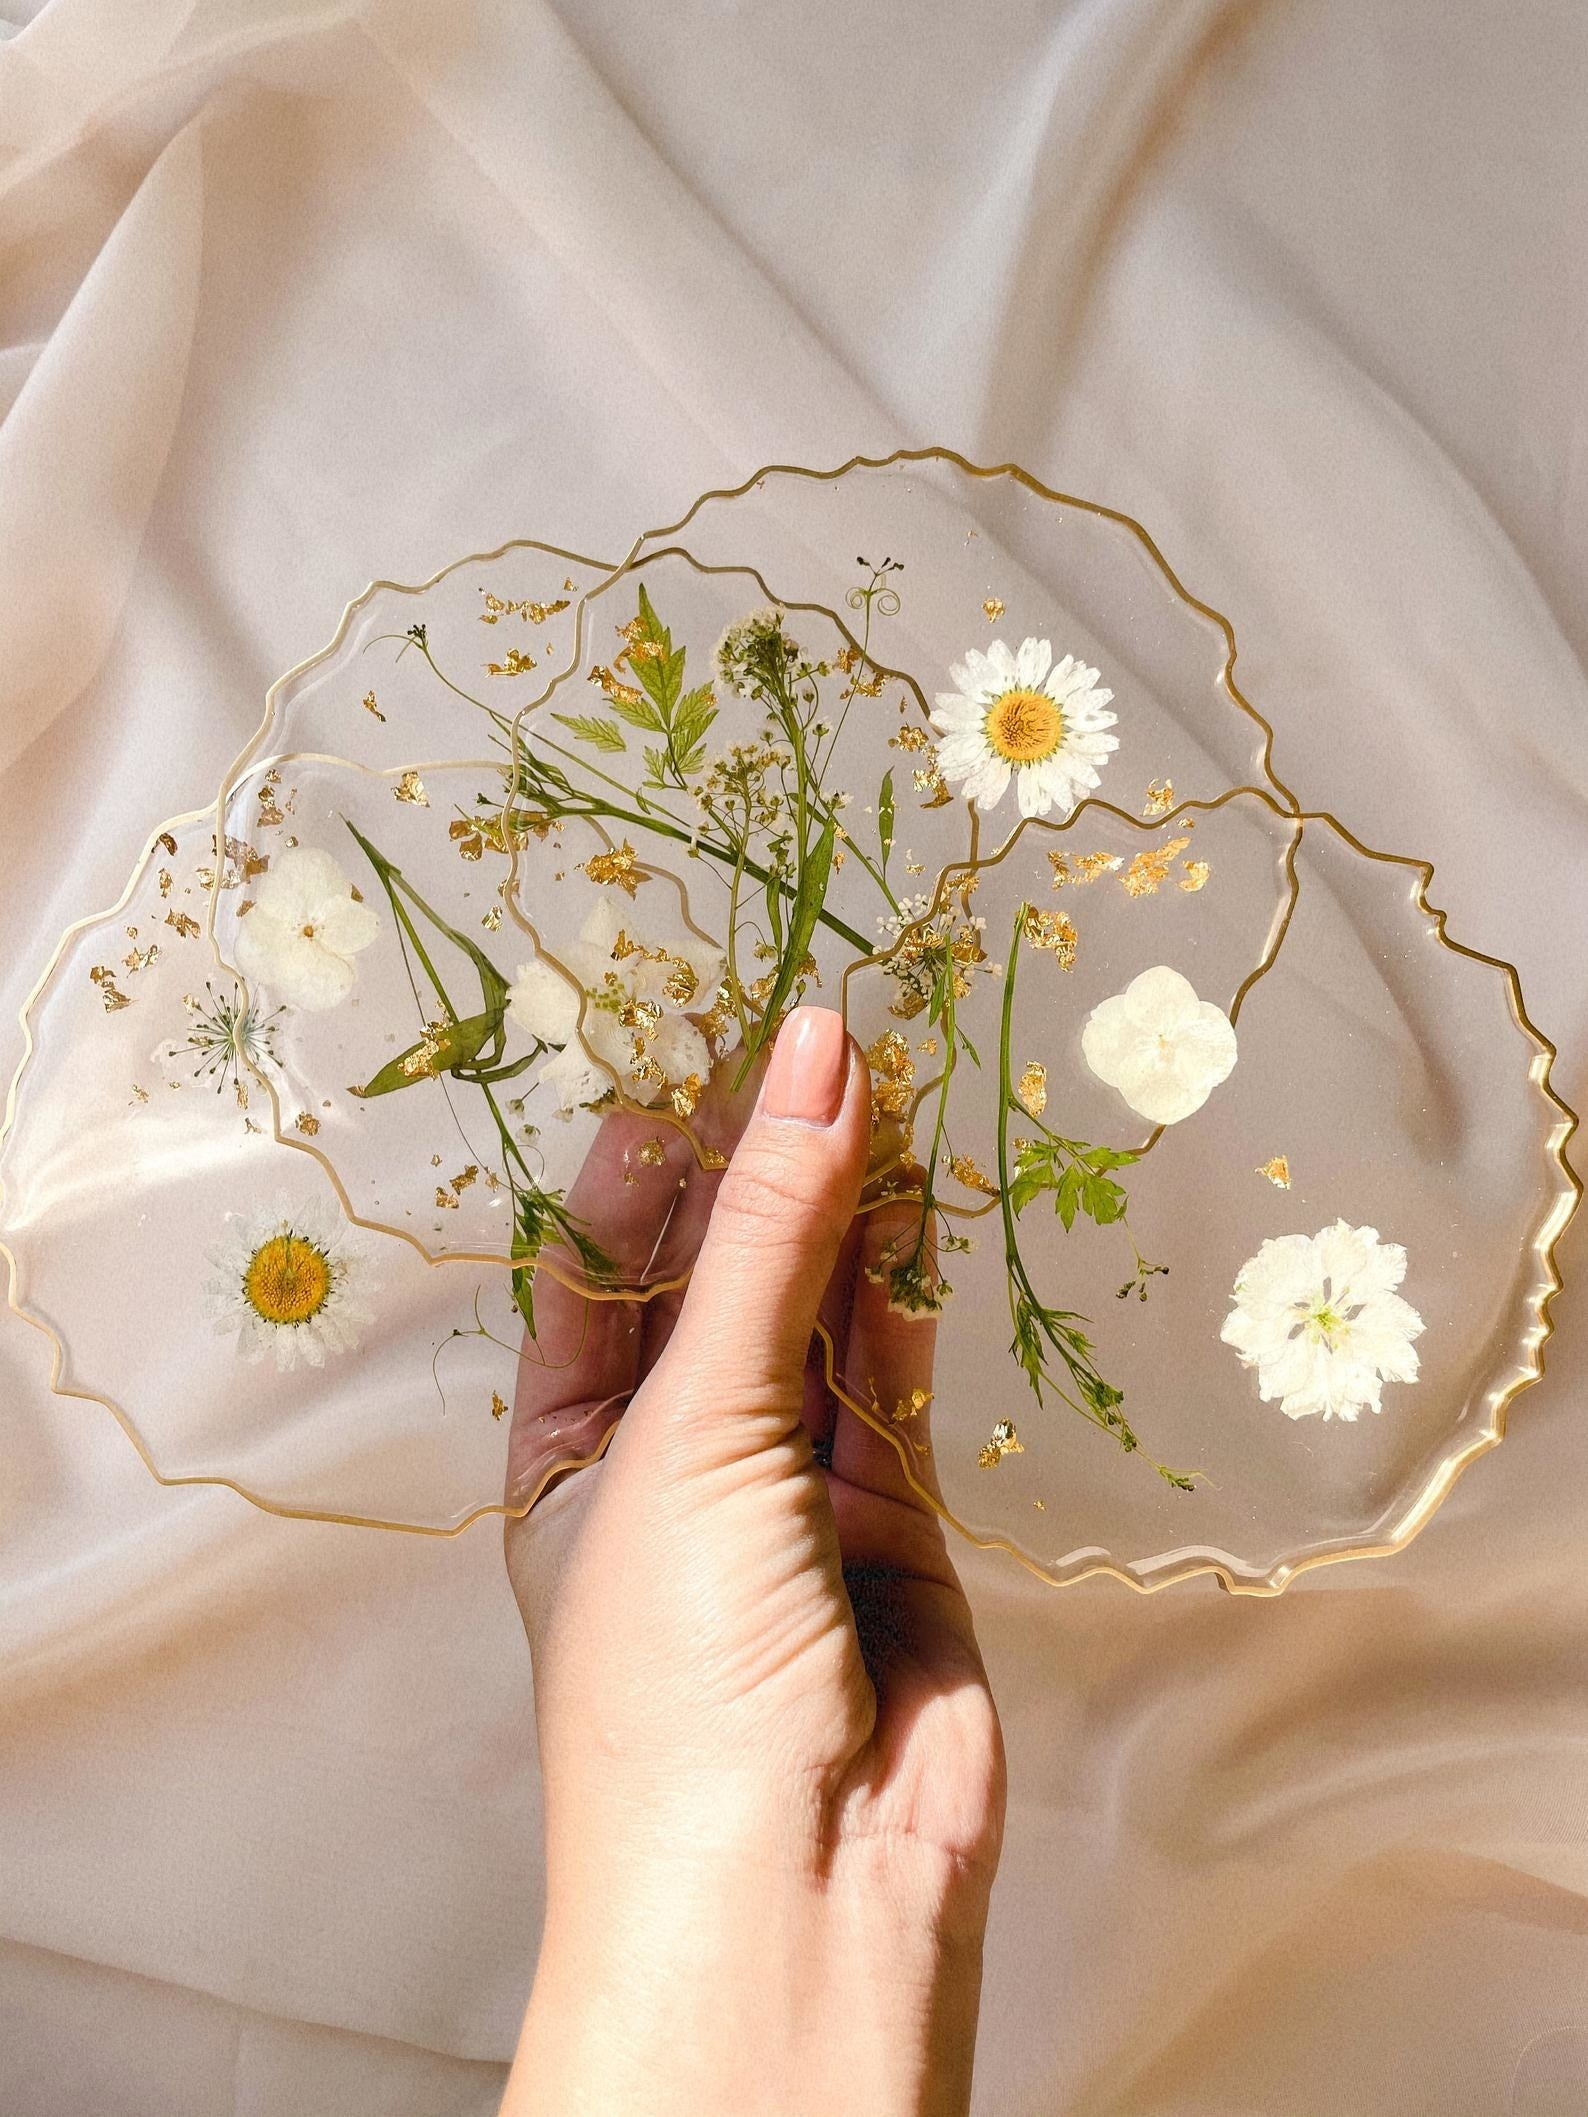 Set of transparent coasters with uneven edged gold rim and white pressed flowers inside